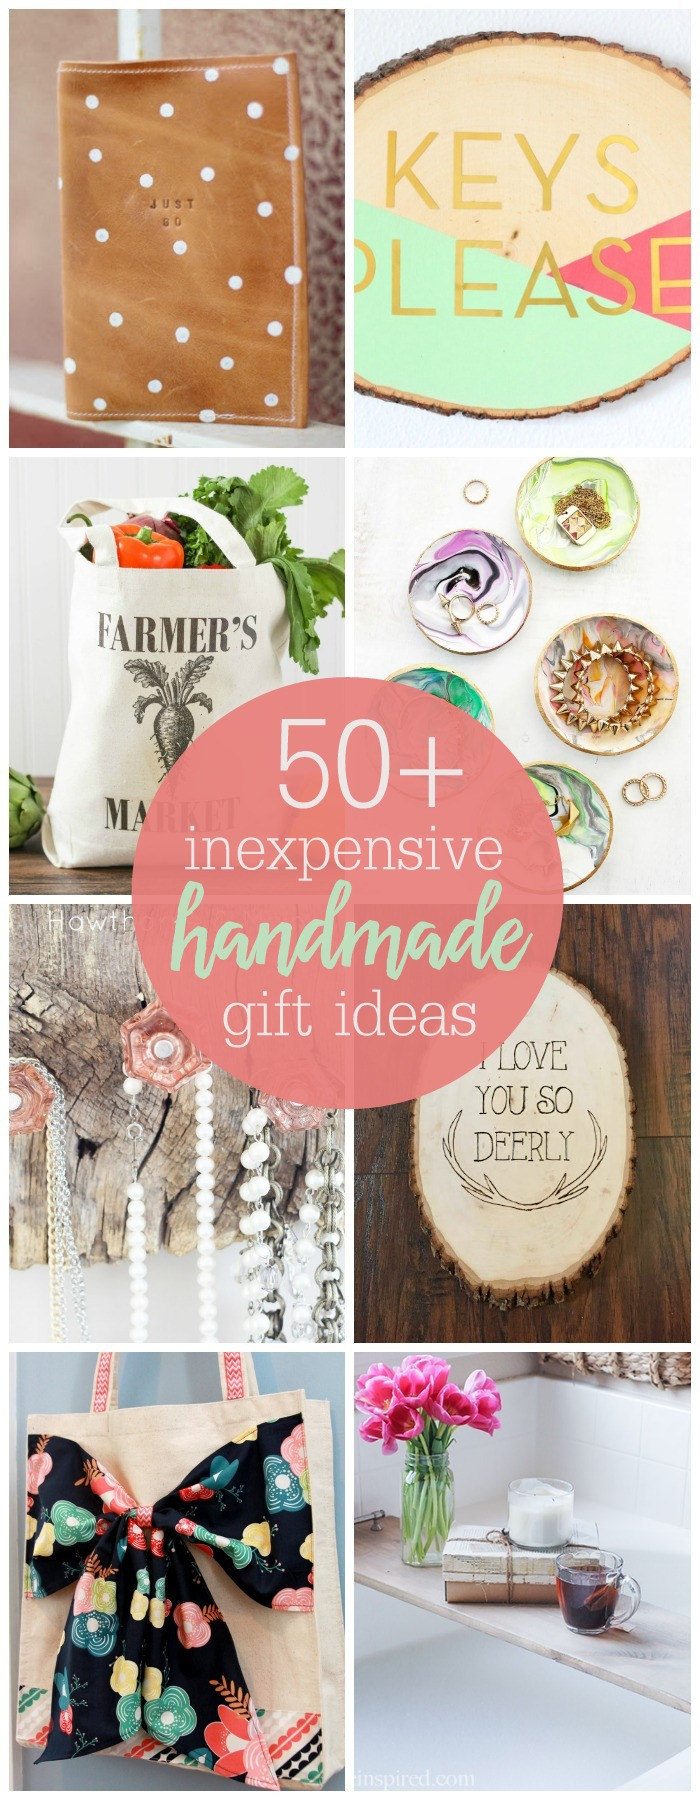 Best ideas about Diy Gift Ideas For Friend . Save or Pin Inexpensive Handmade Gift Ideas Now.